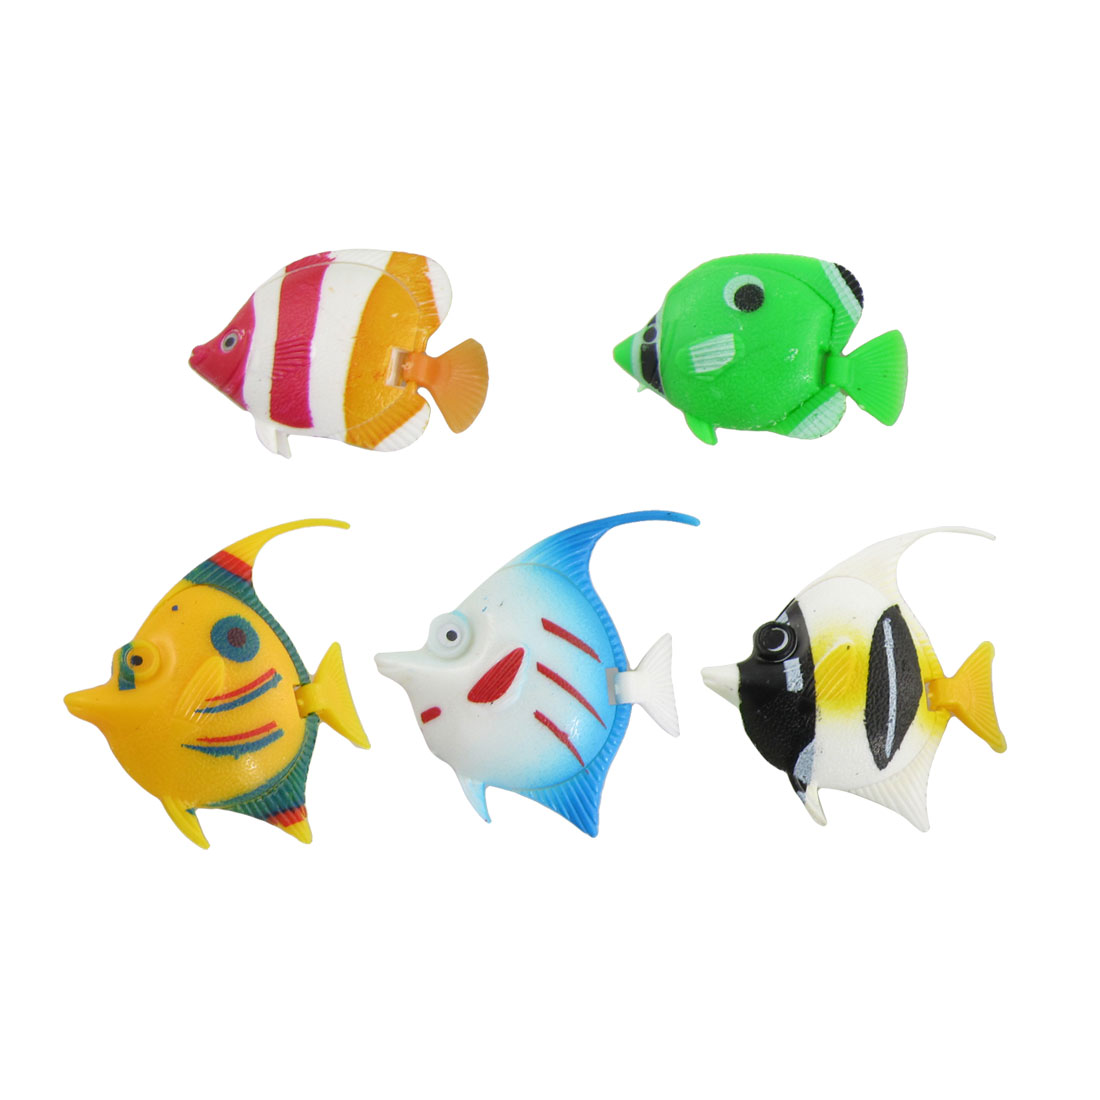 Aquarium Ornament 5 Pcs Colorful Plastic Tropical Fish Cjiak